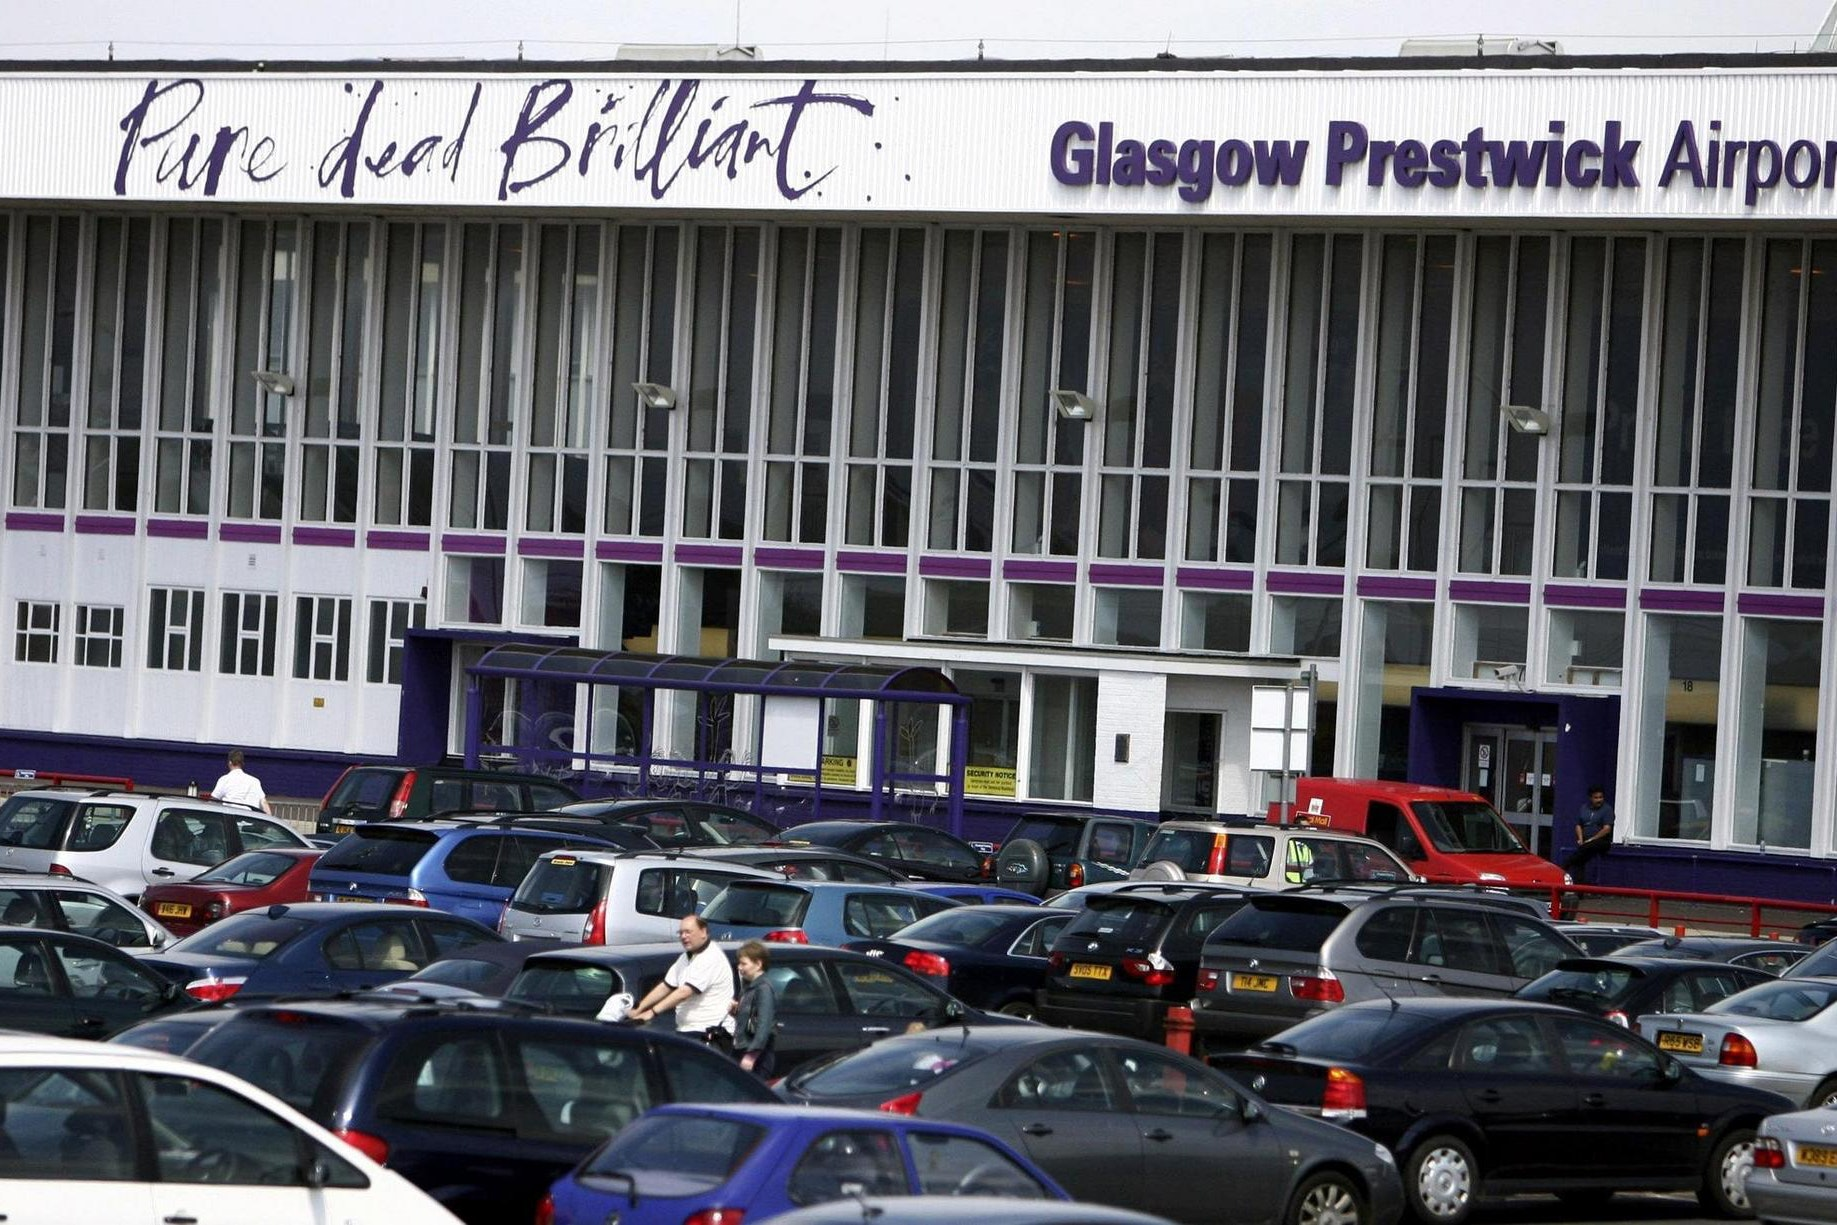 Man thrown off plane at Prestwick Airport for aggressive behaviour